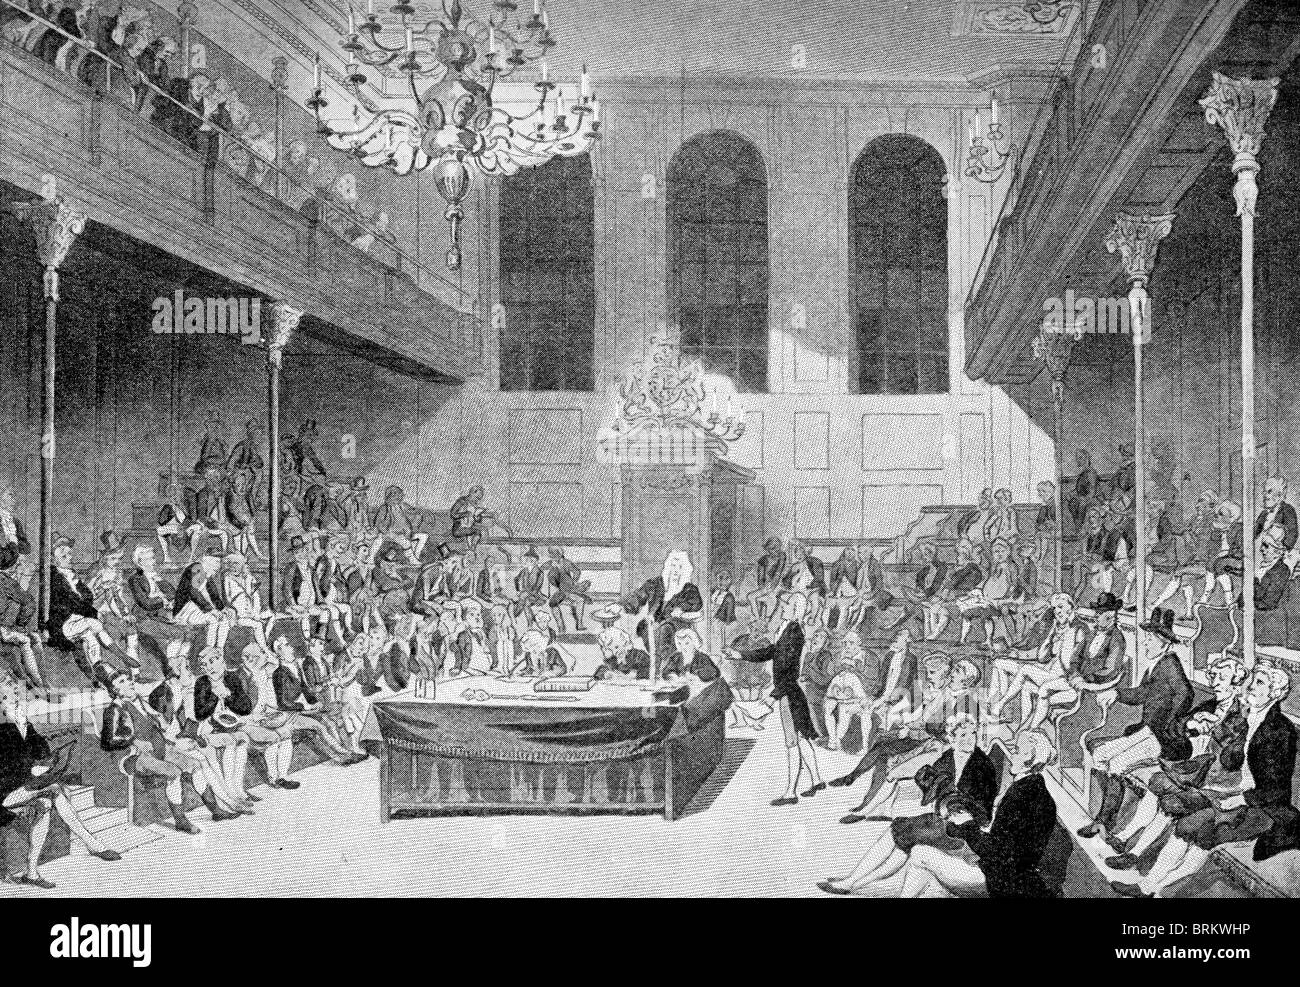 The Old House of Commons which was destroyed by fire in 1834. - Stock Image